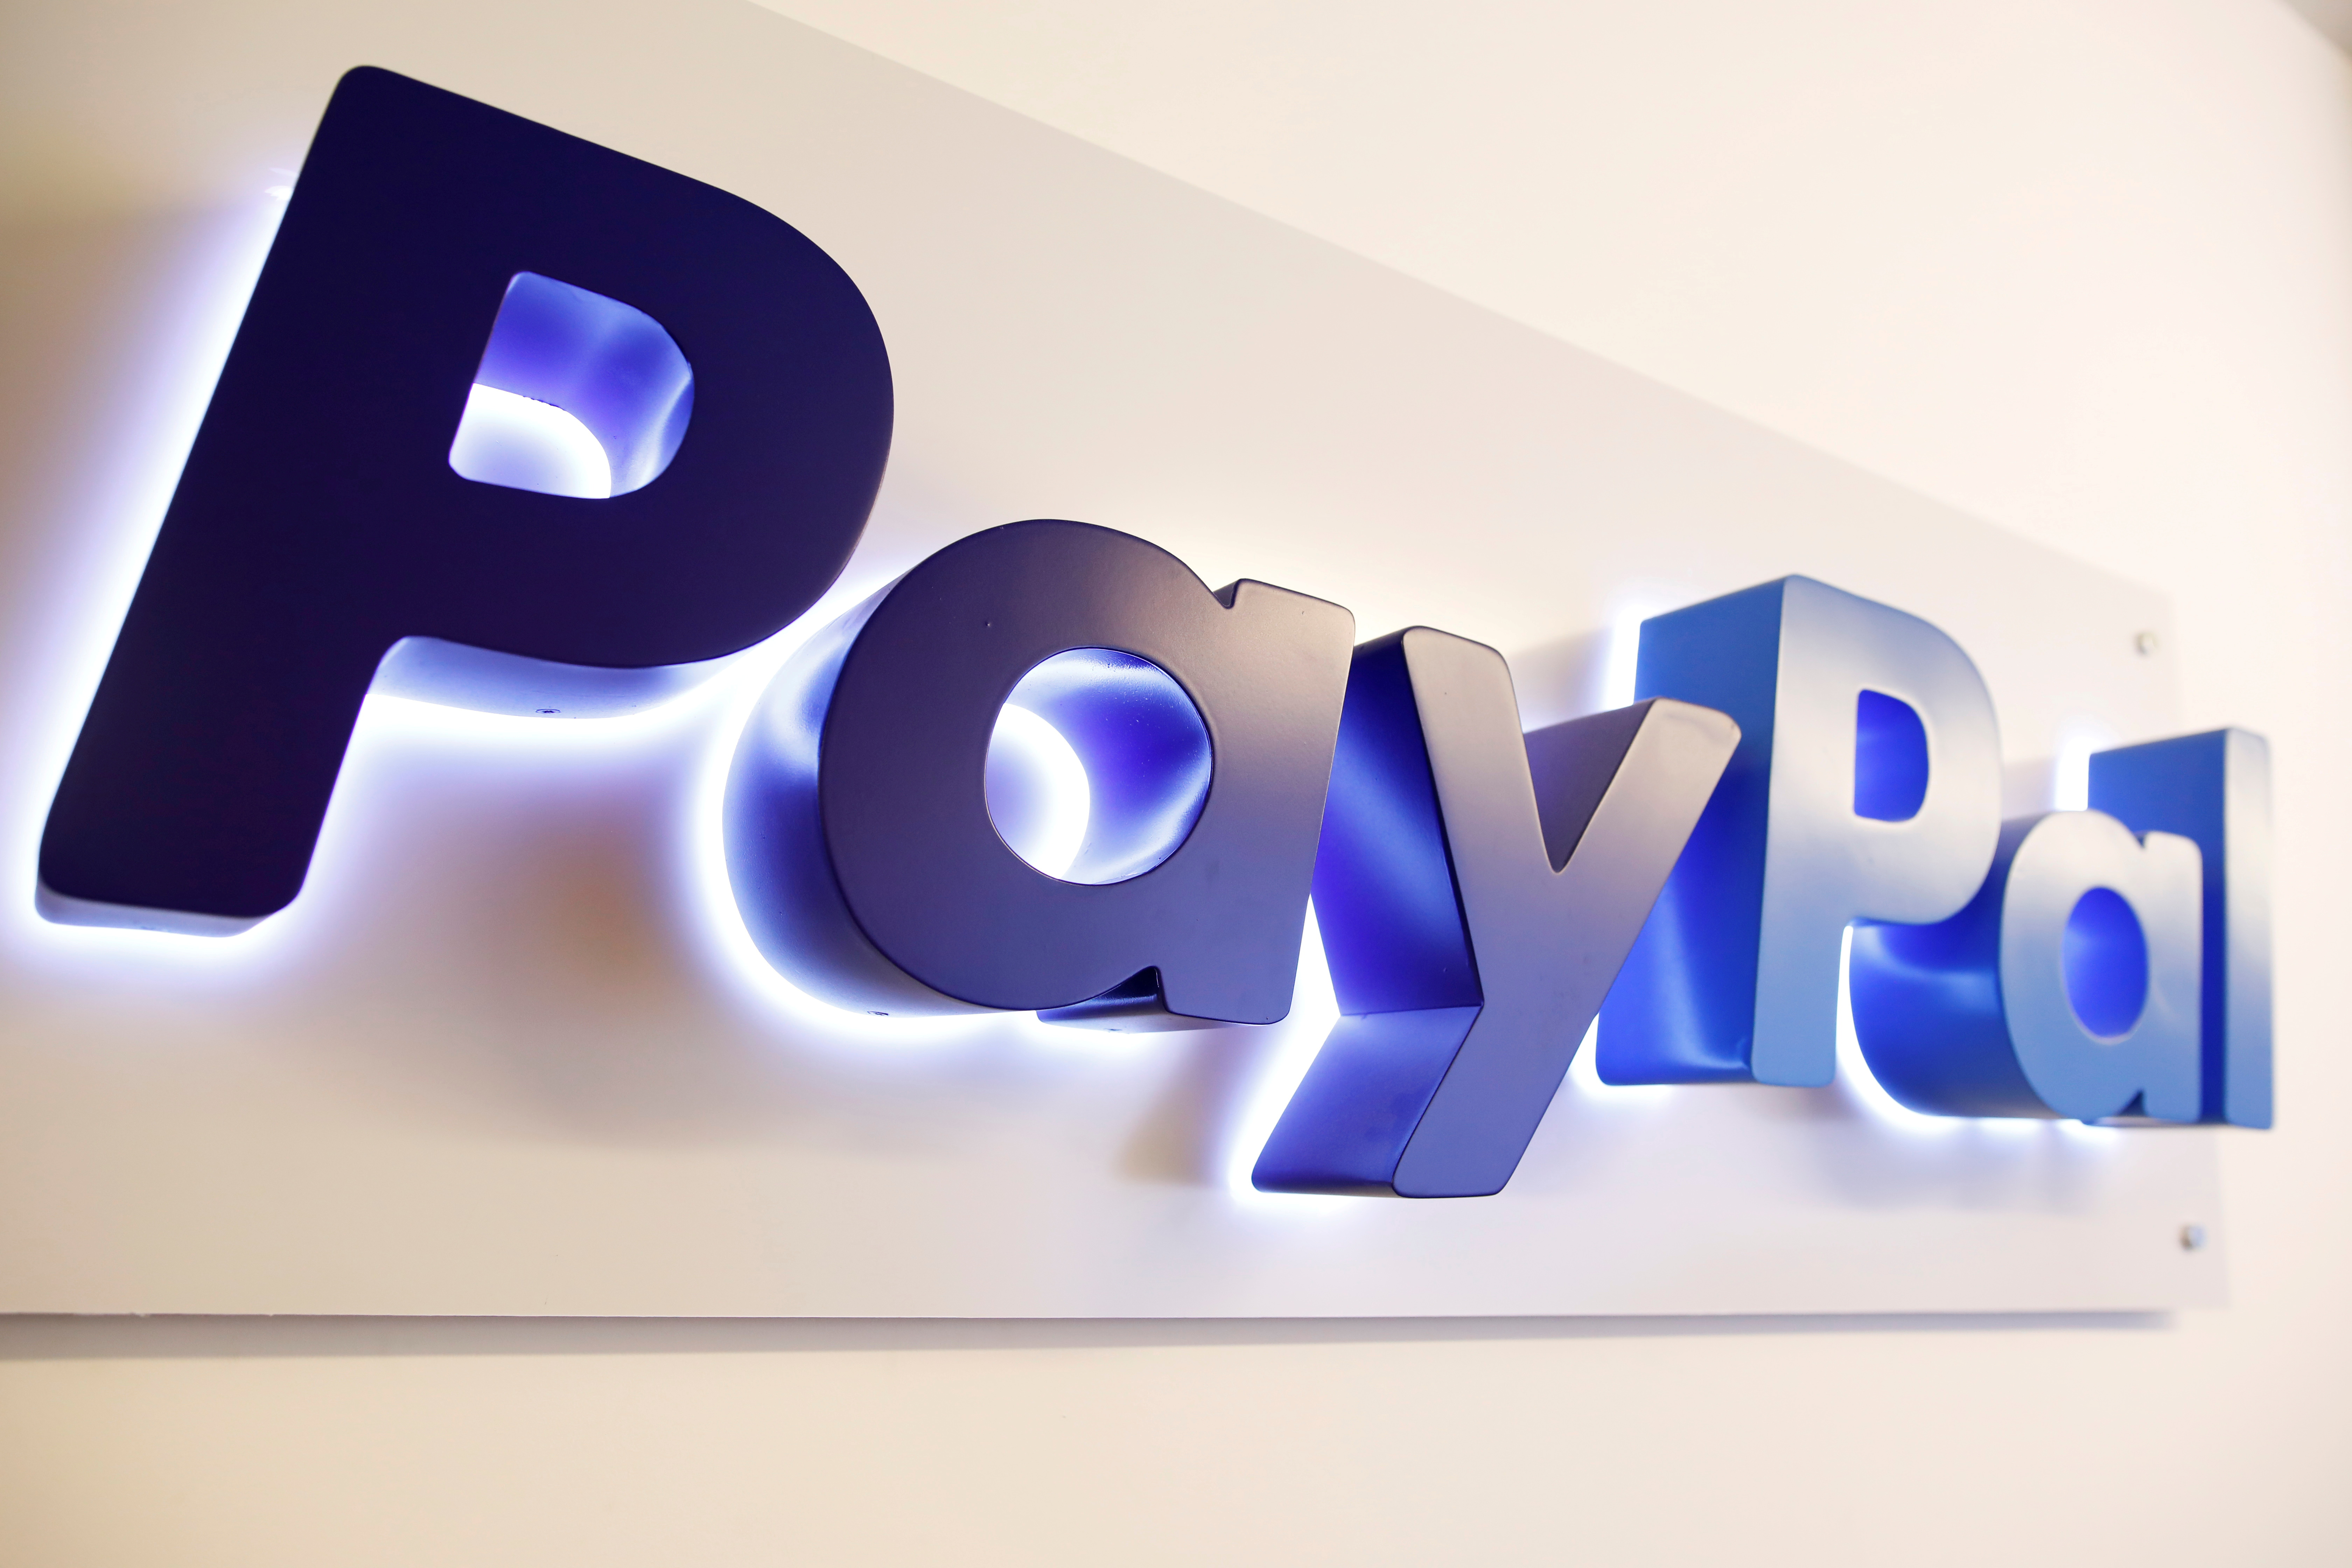 The PayPal logo is seen at a high-tech park in Beersheba, southern Israel August 28, 2017. Picture taken August 28, 2017. REUTERS/Amir Cohen